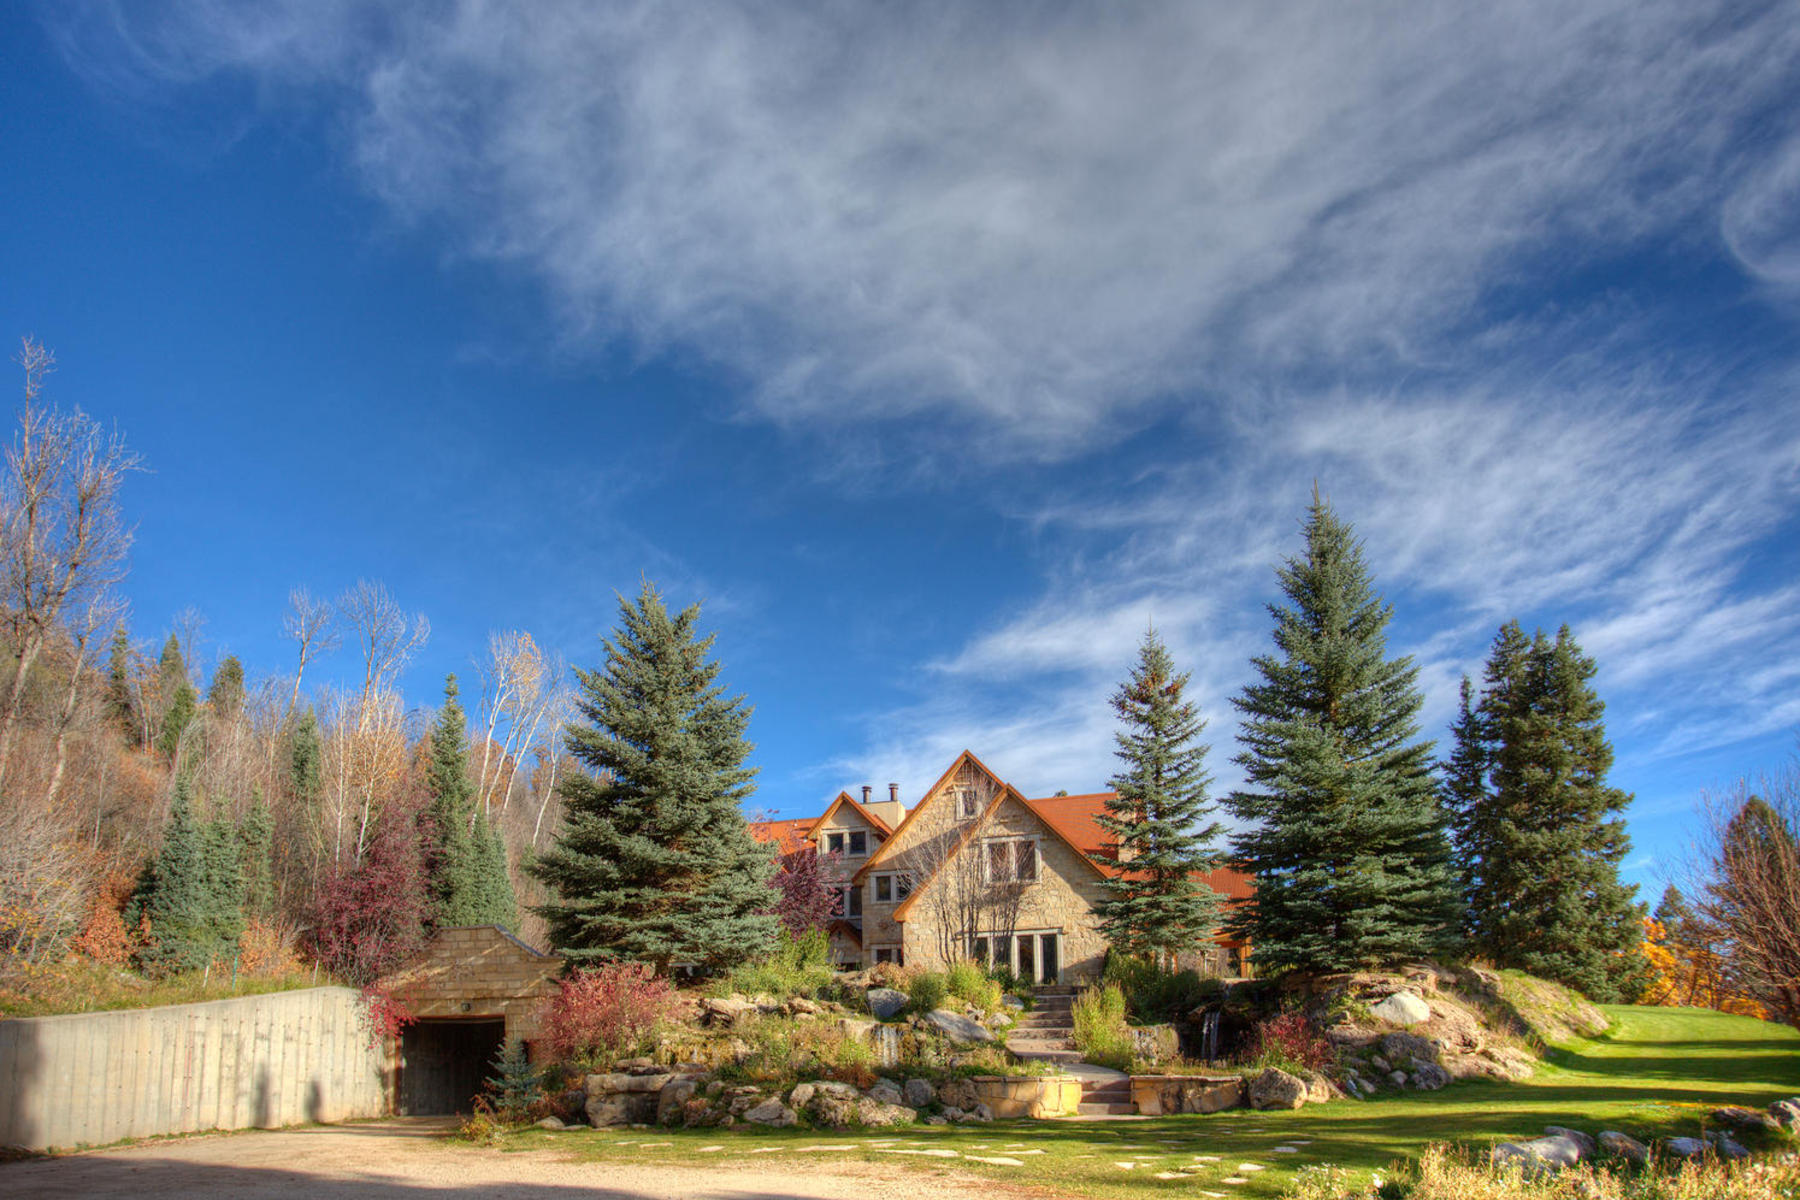 Casa Unifamiliar por un Venta en Stone Hill Mountain Retreat 2590 W Snake Creek Rd Midway, Utah 84049 Estados Unidos